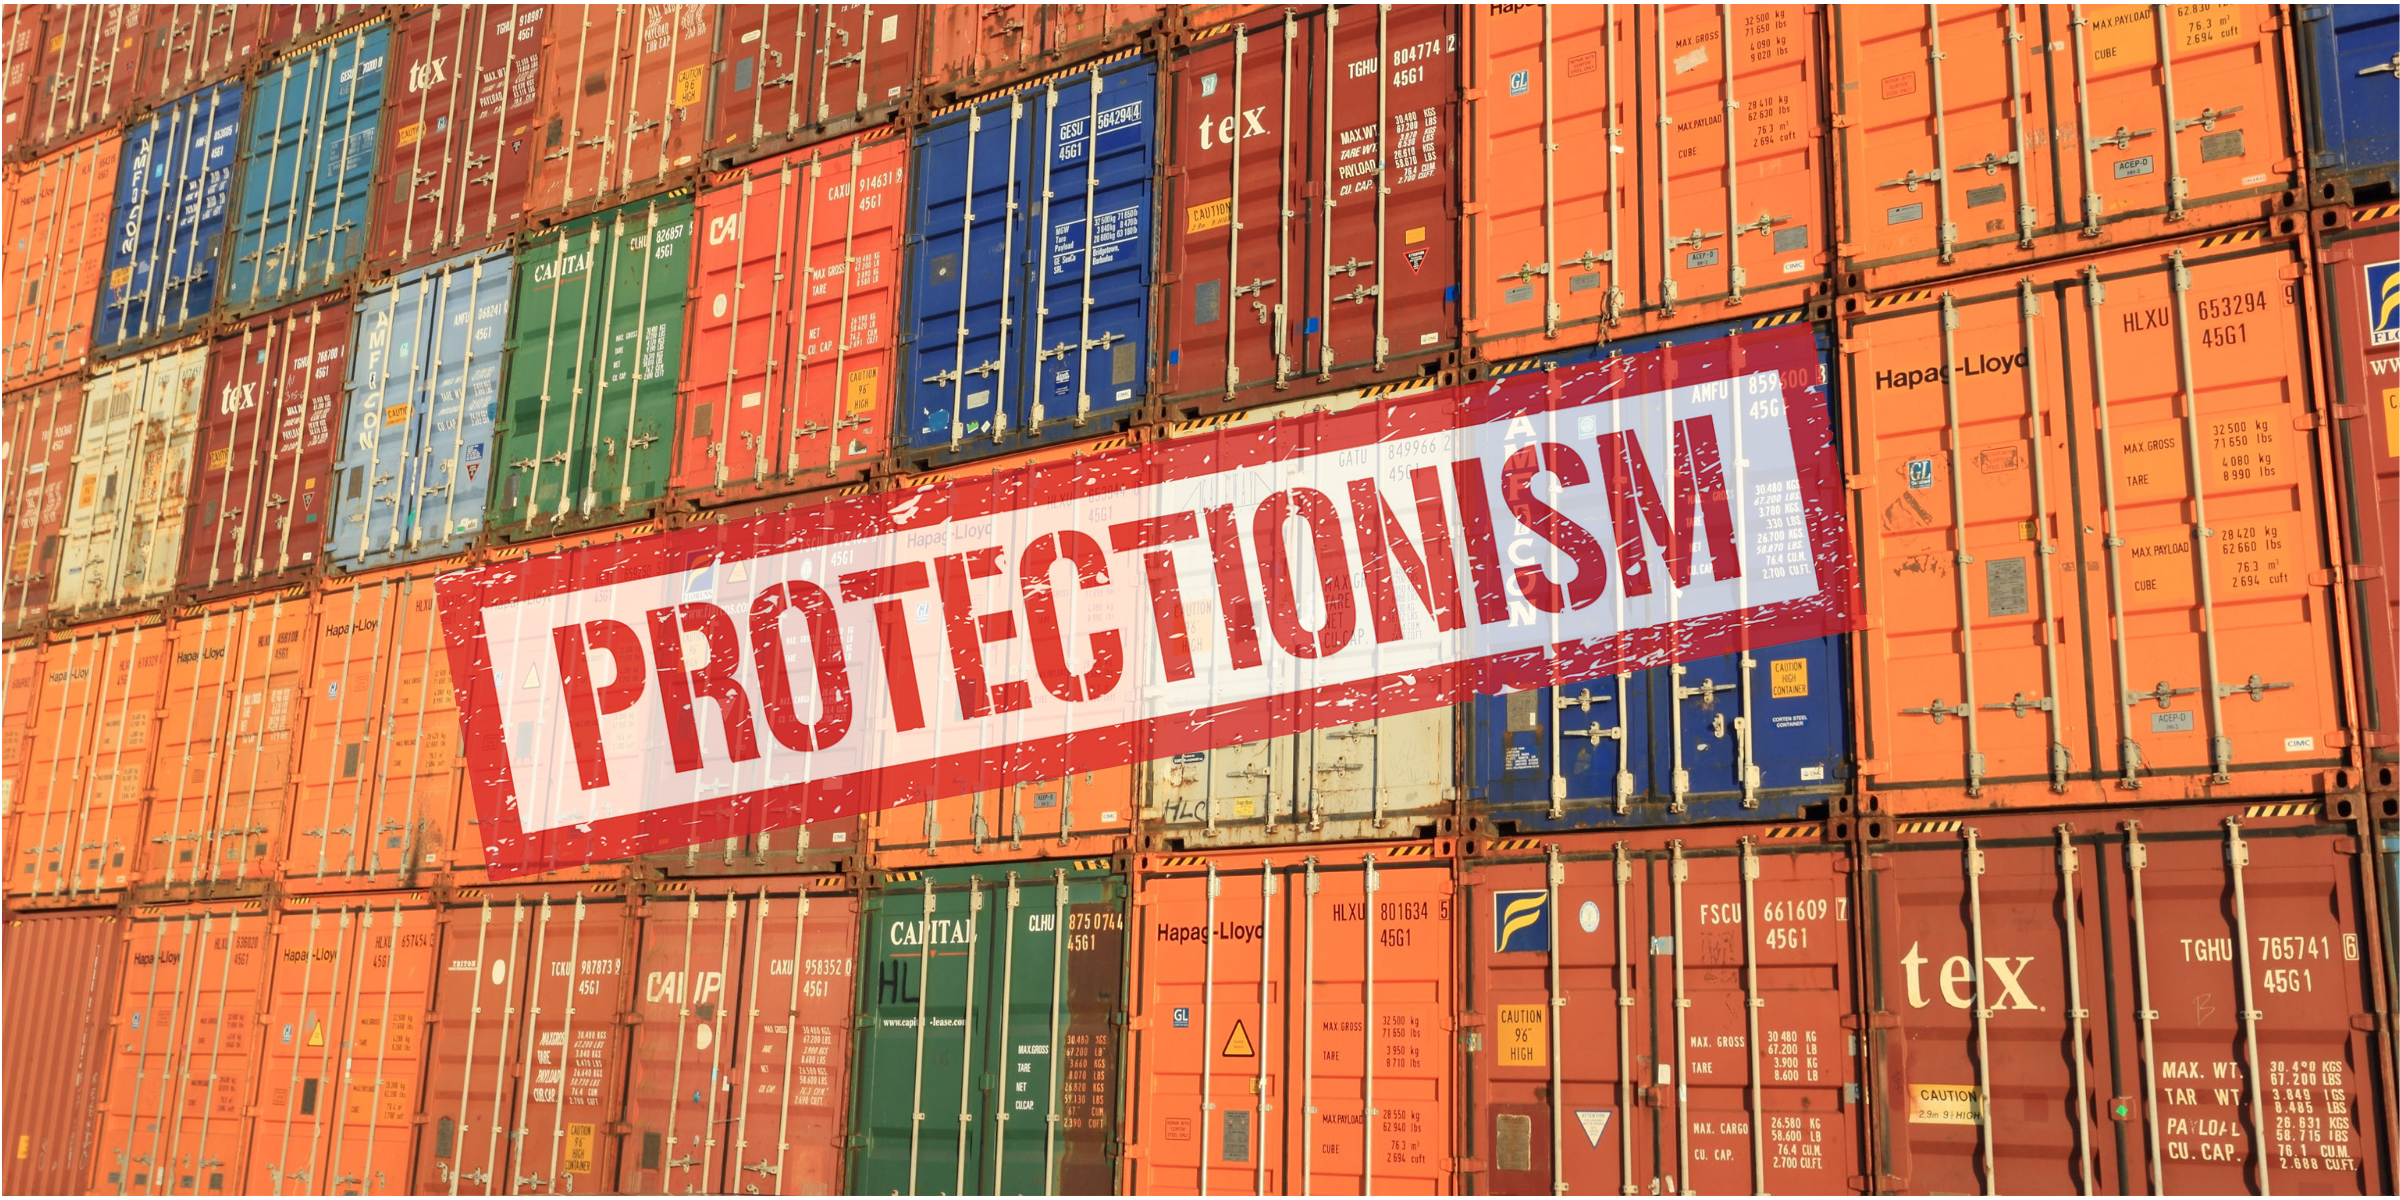 Protectionism During the Times of COVID-19 - a step back for the global economy? An image of shipping crates covered by the word 'Protectionism'.